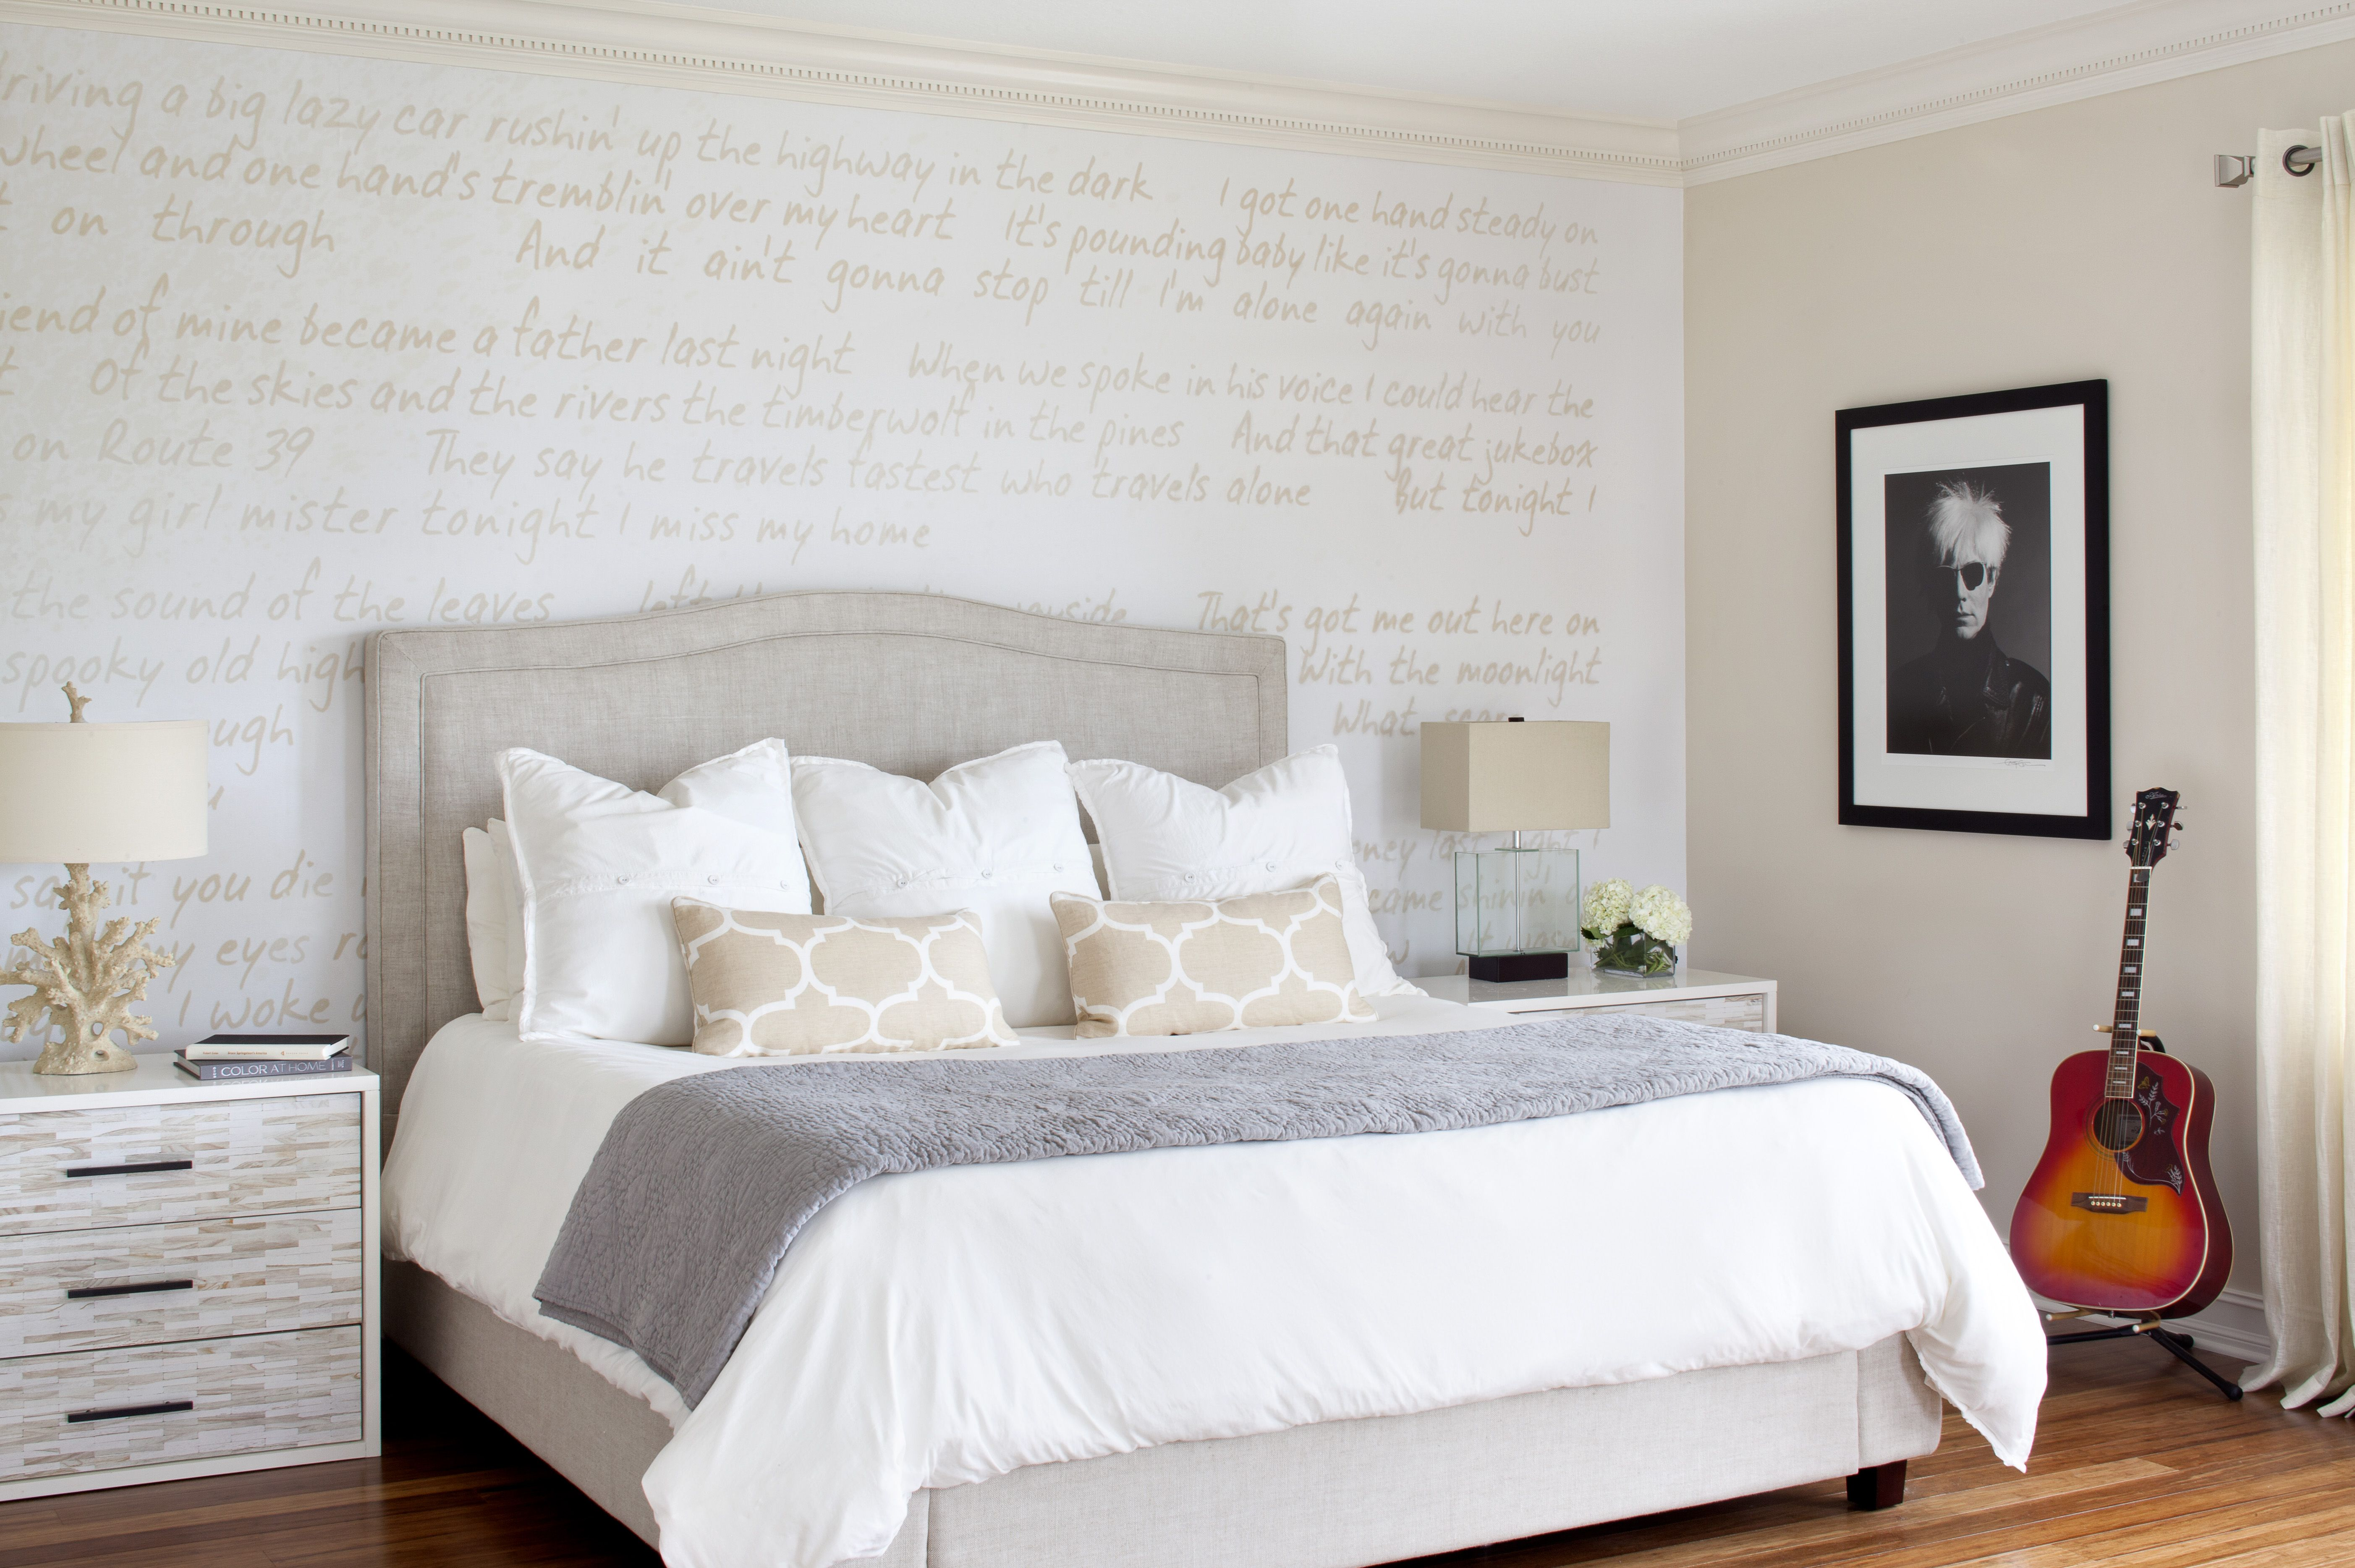 Master bedroom without bathroom  Springsteen lyrics on the master bedroom wall photos by Jessica